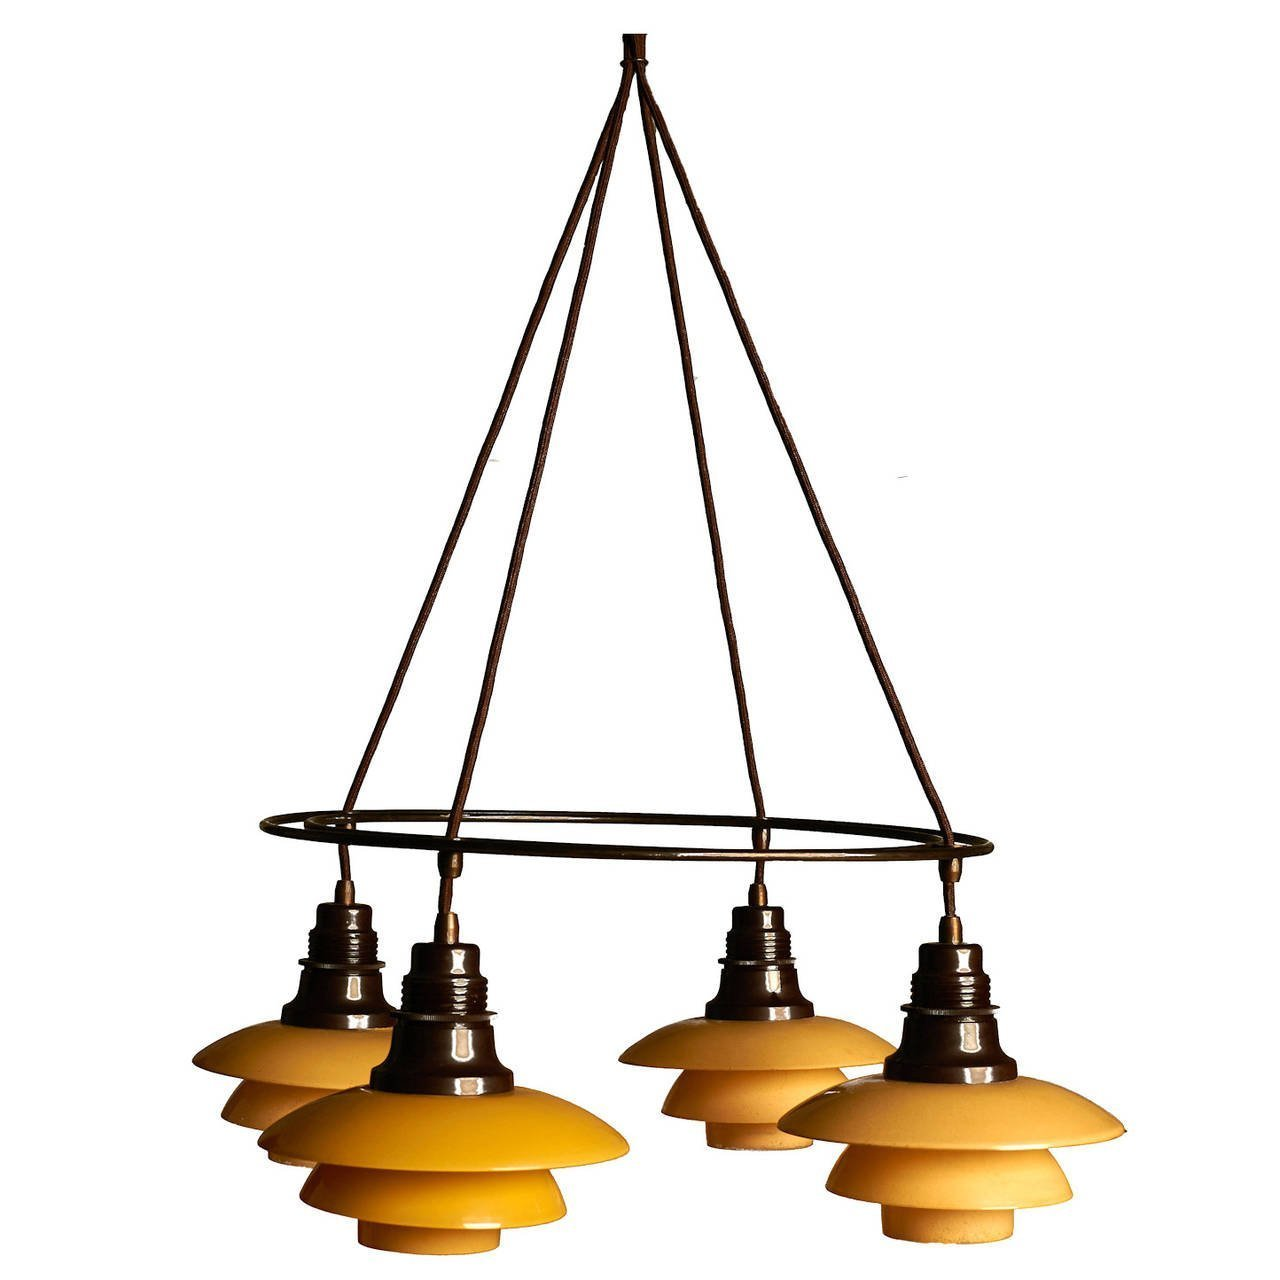 Large Double Ring Chandelier At 1stdibs: Poul Henningsen Double Ring Chandelier